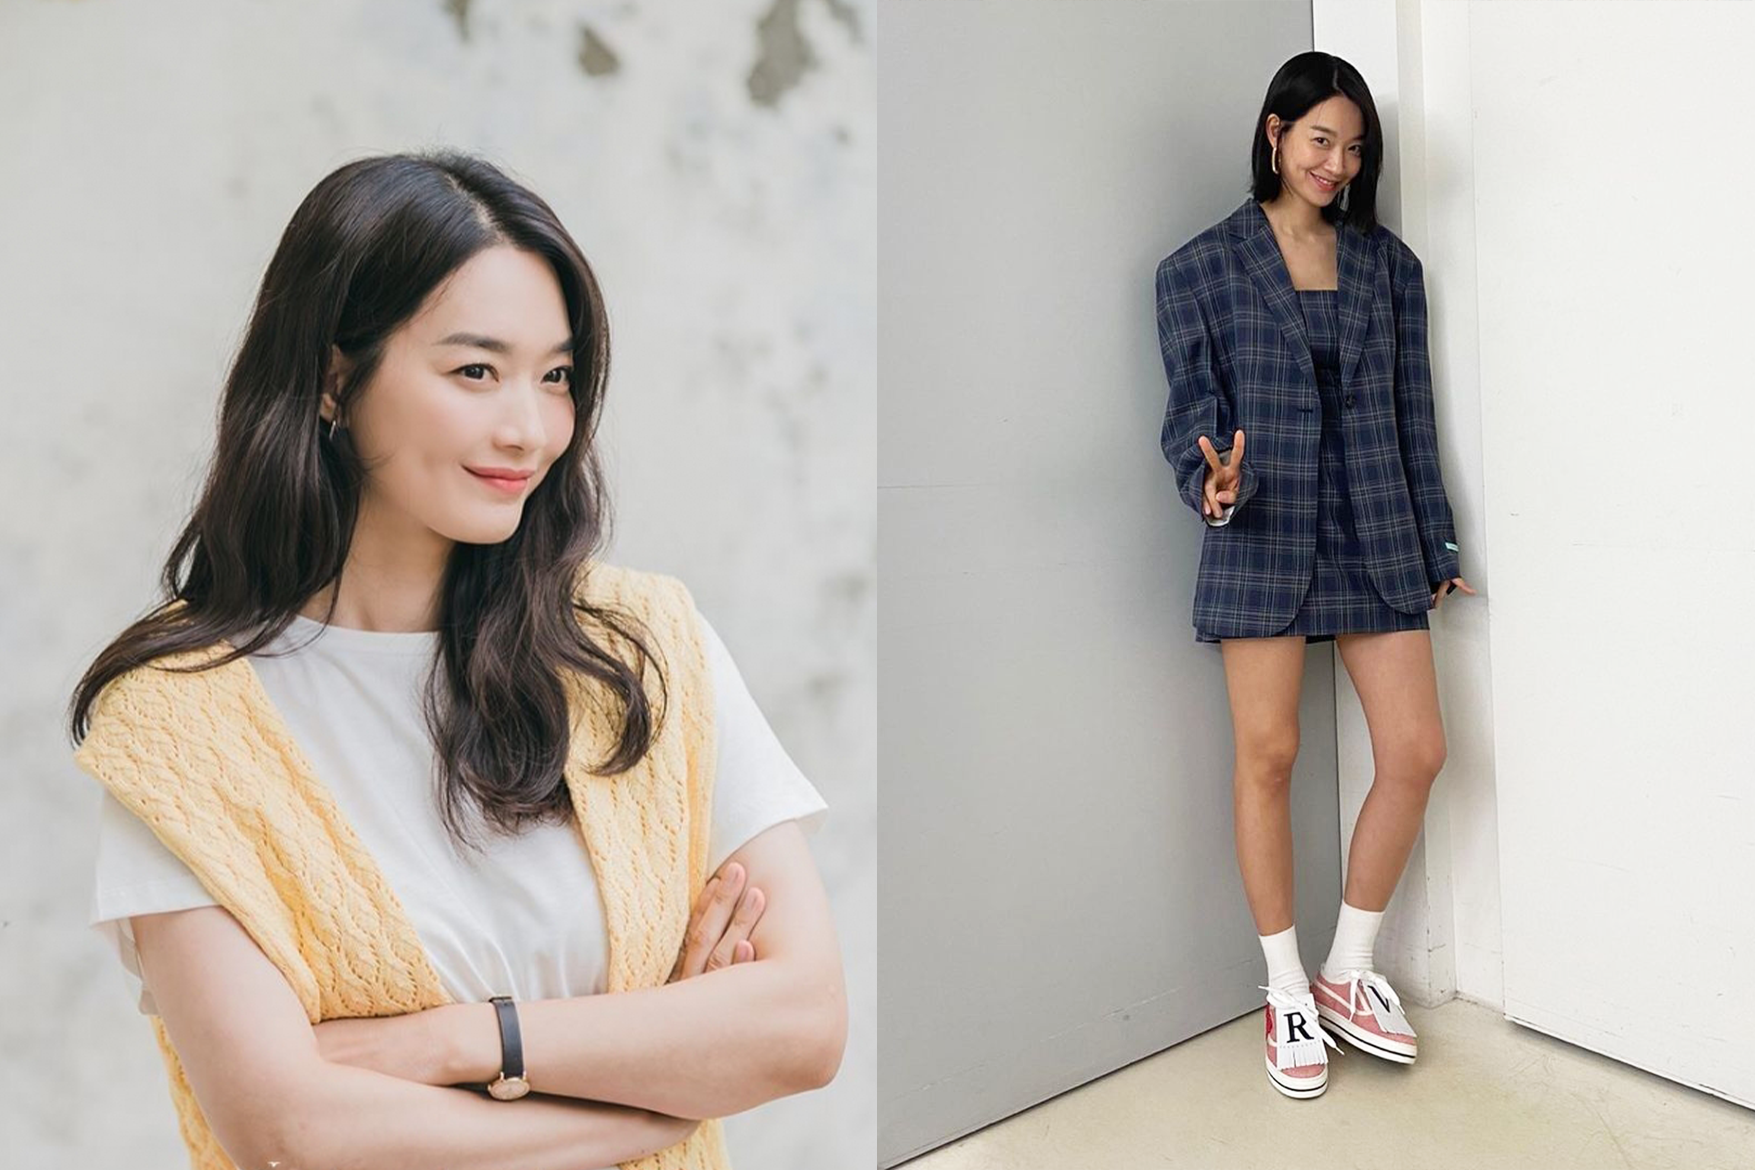 Shin-Min-Ah-4-daily-rules-to-follow-it-comes-fitness-youth-look-01